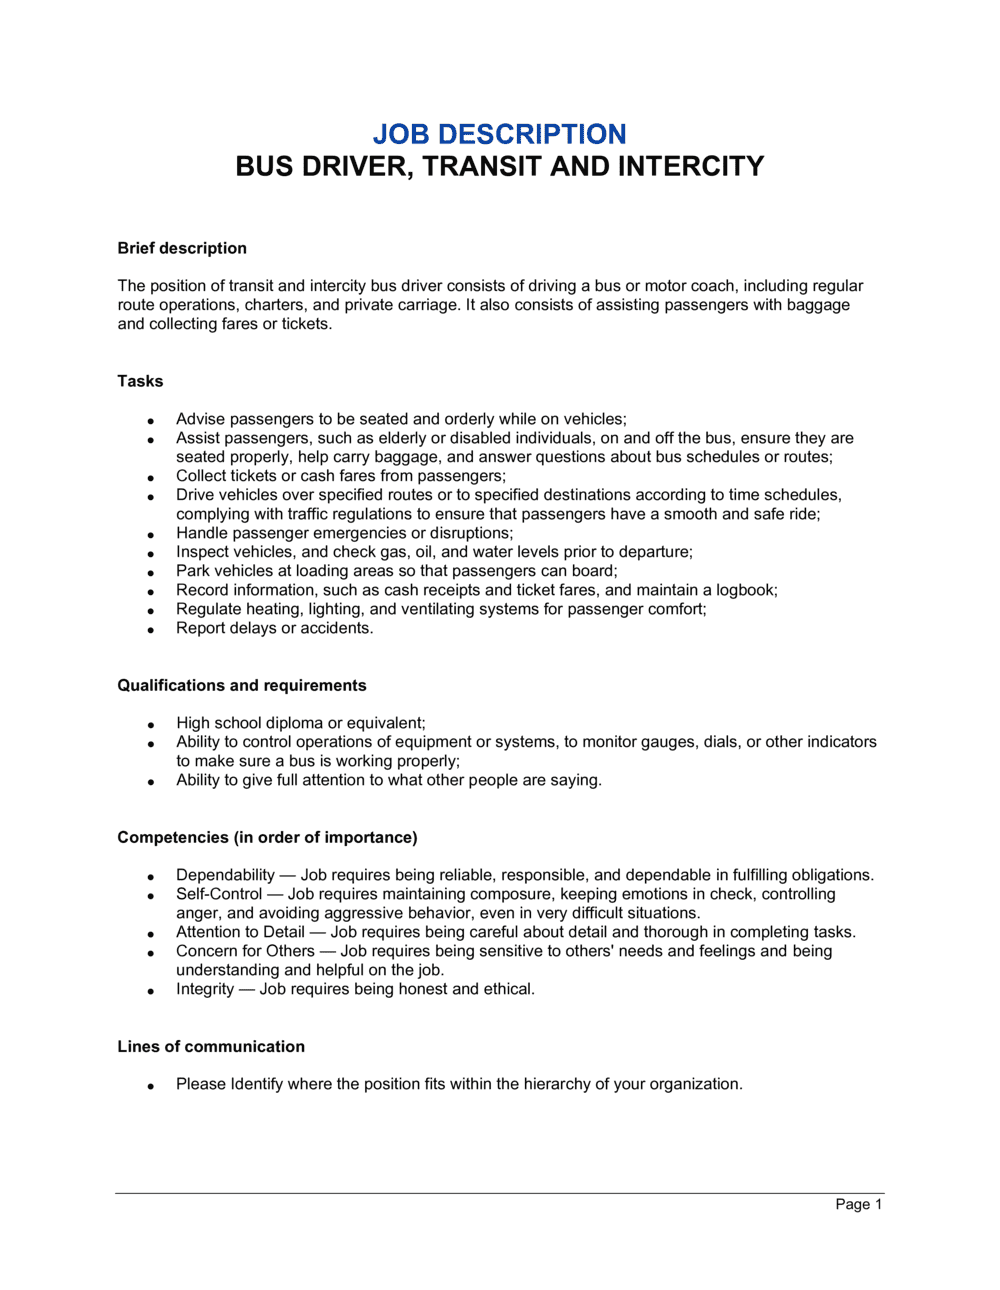 Business-in-a-Box's Bus Driver Transit and Intercity Job Description Template